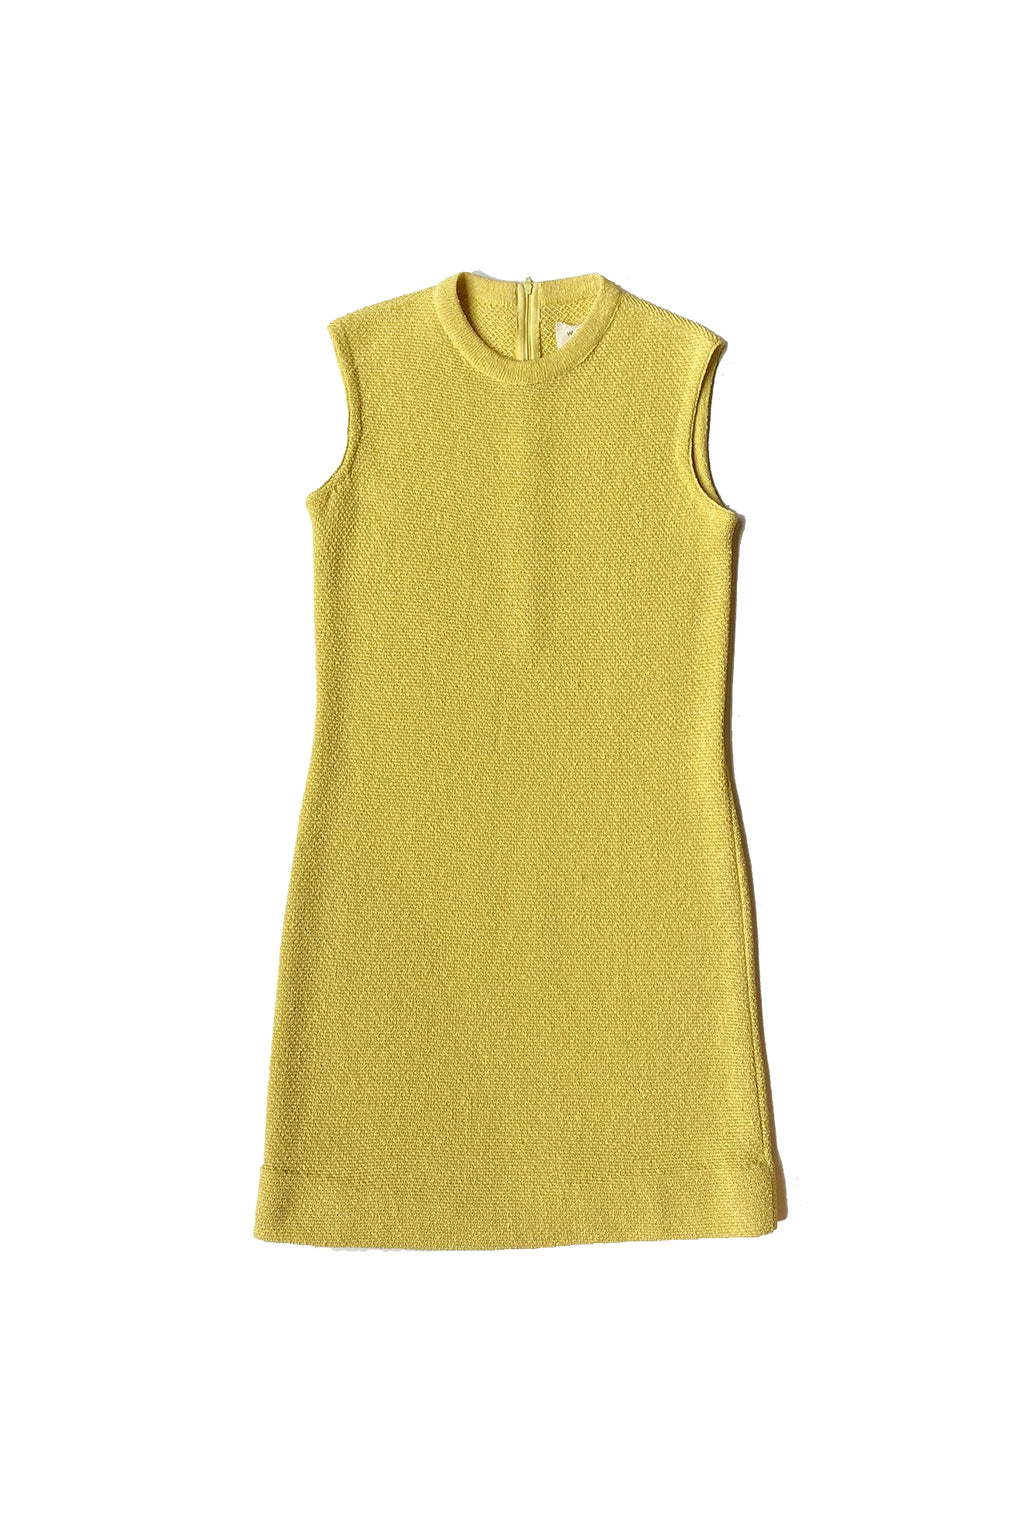 Buttercup yellow Worth knit dress and jacket